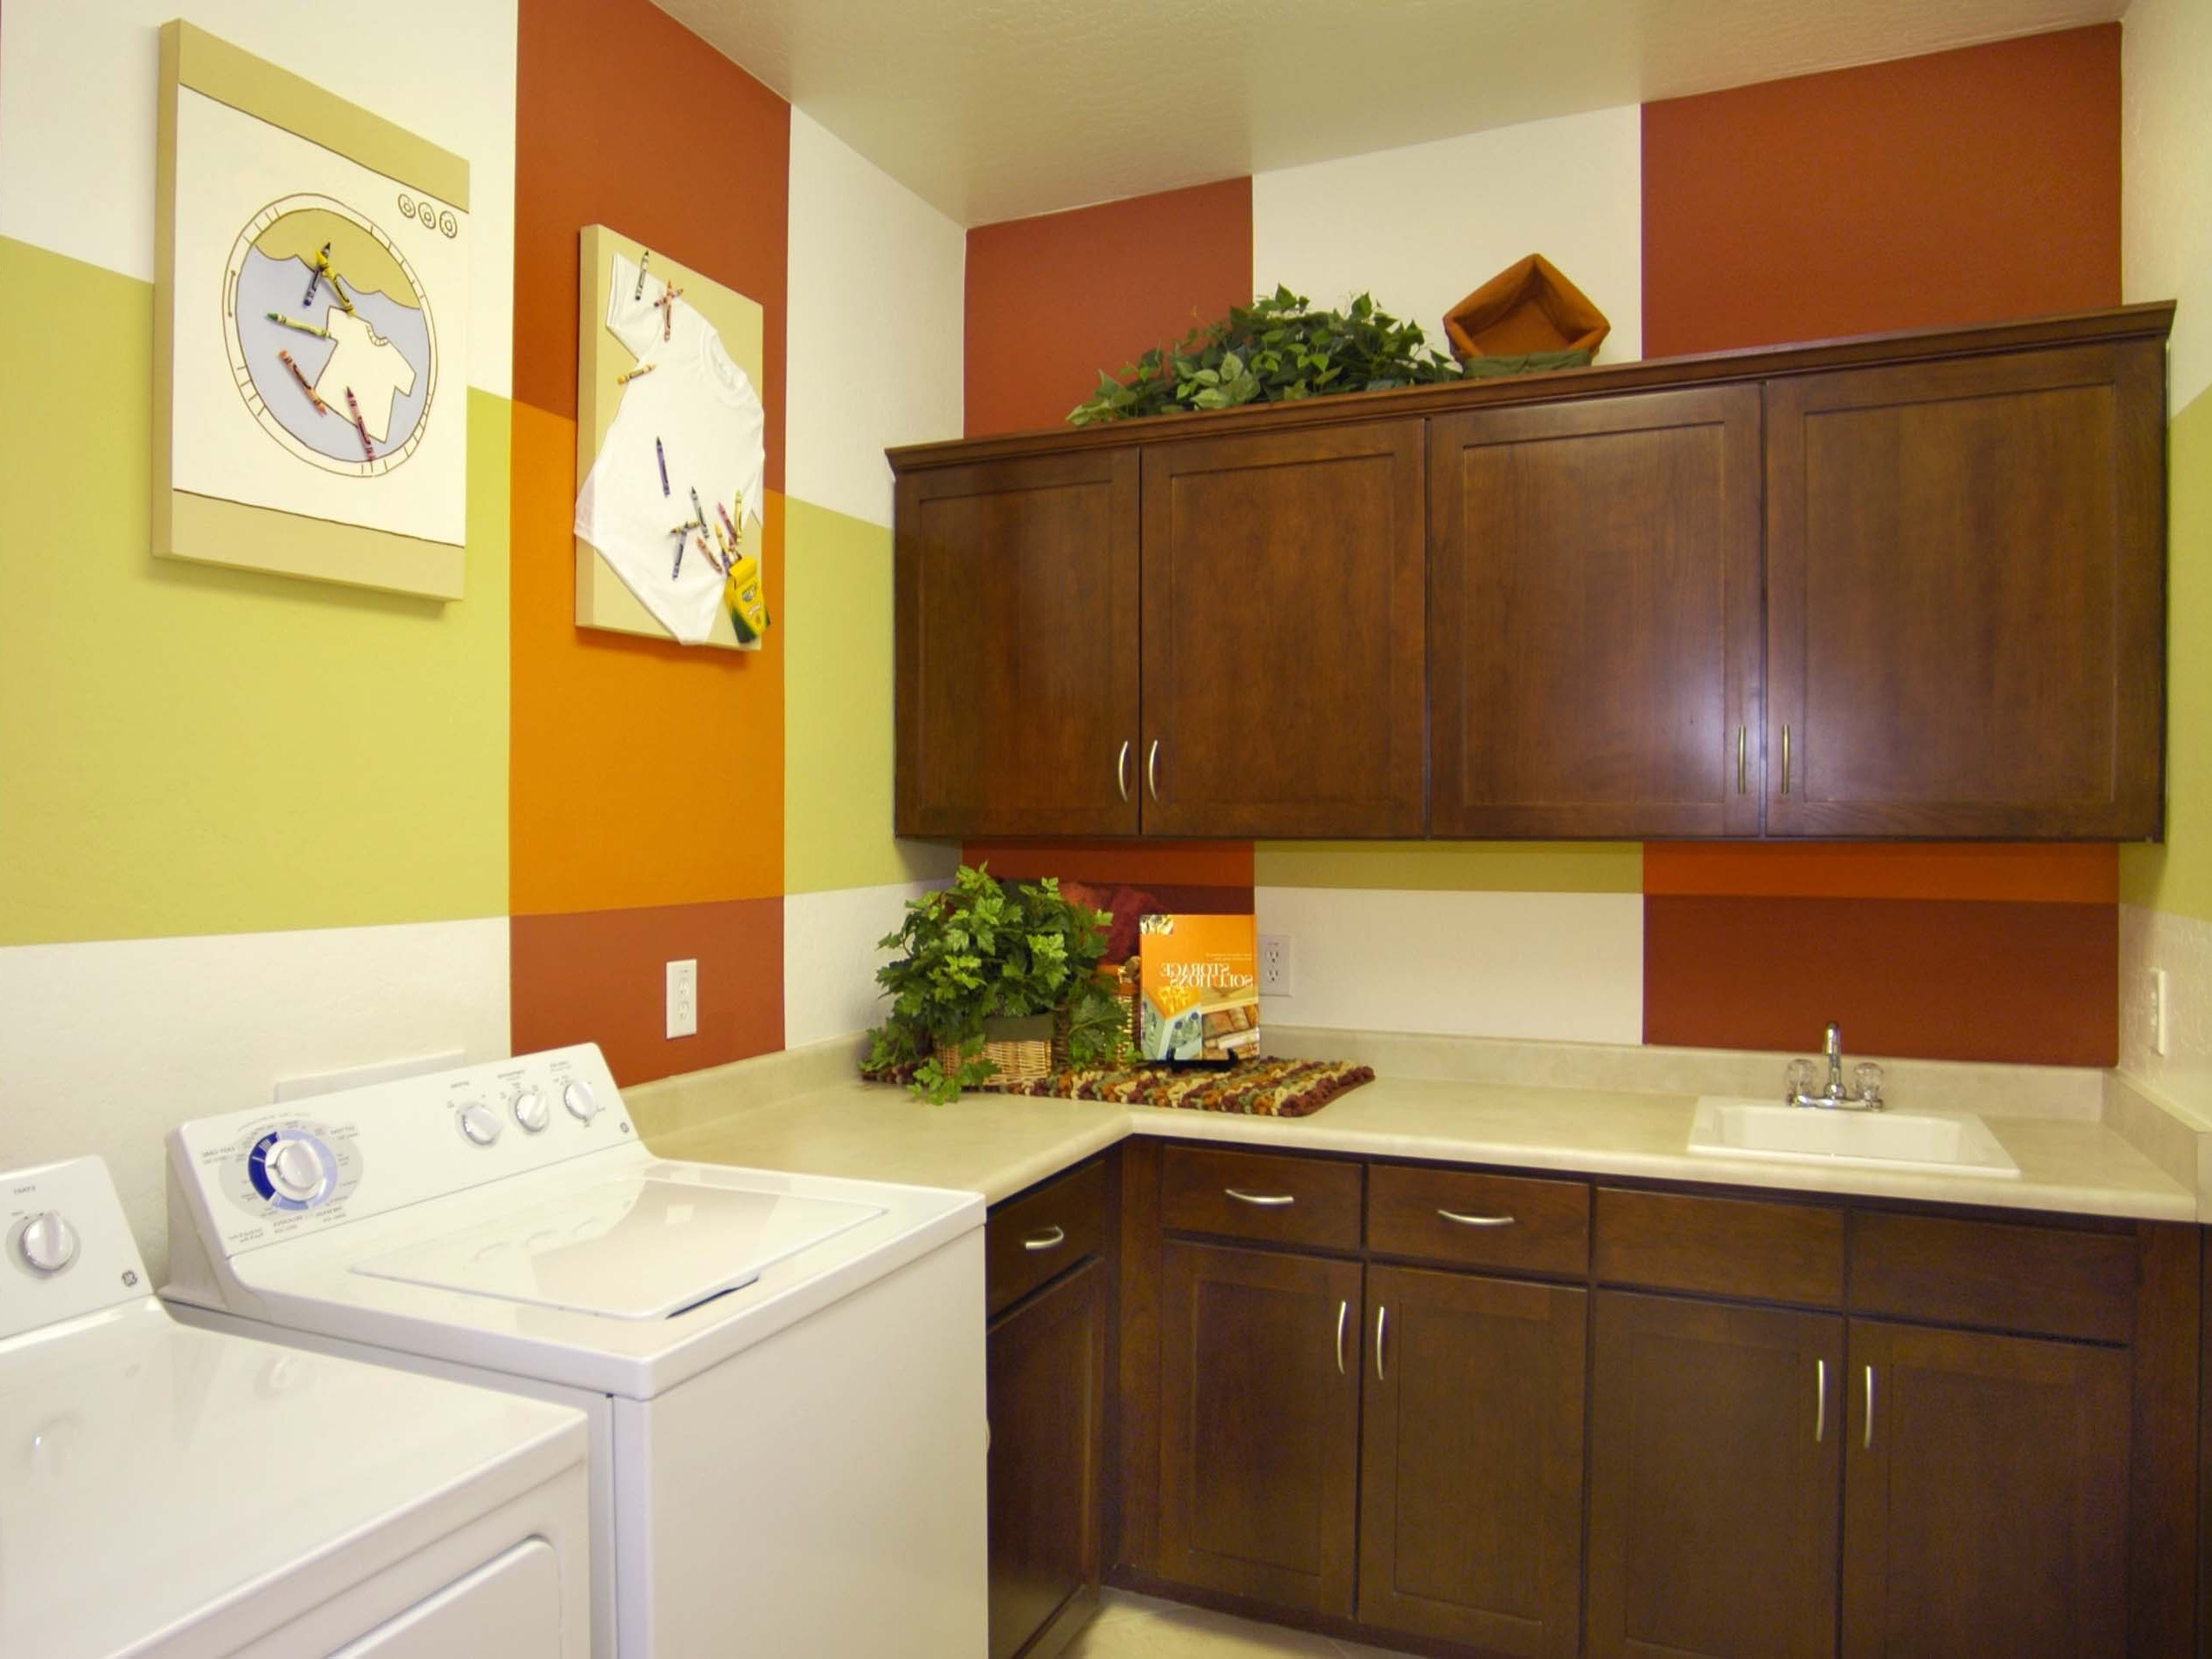 Cozy Traditional Utility And Laundry Room With Storage (Image 7 of 26)